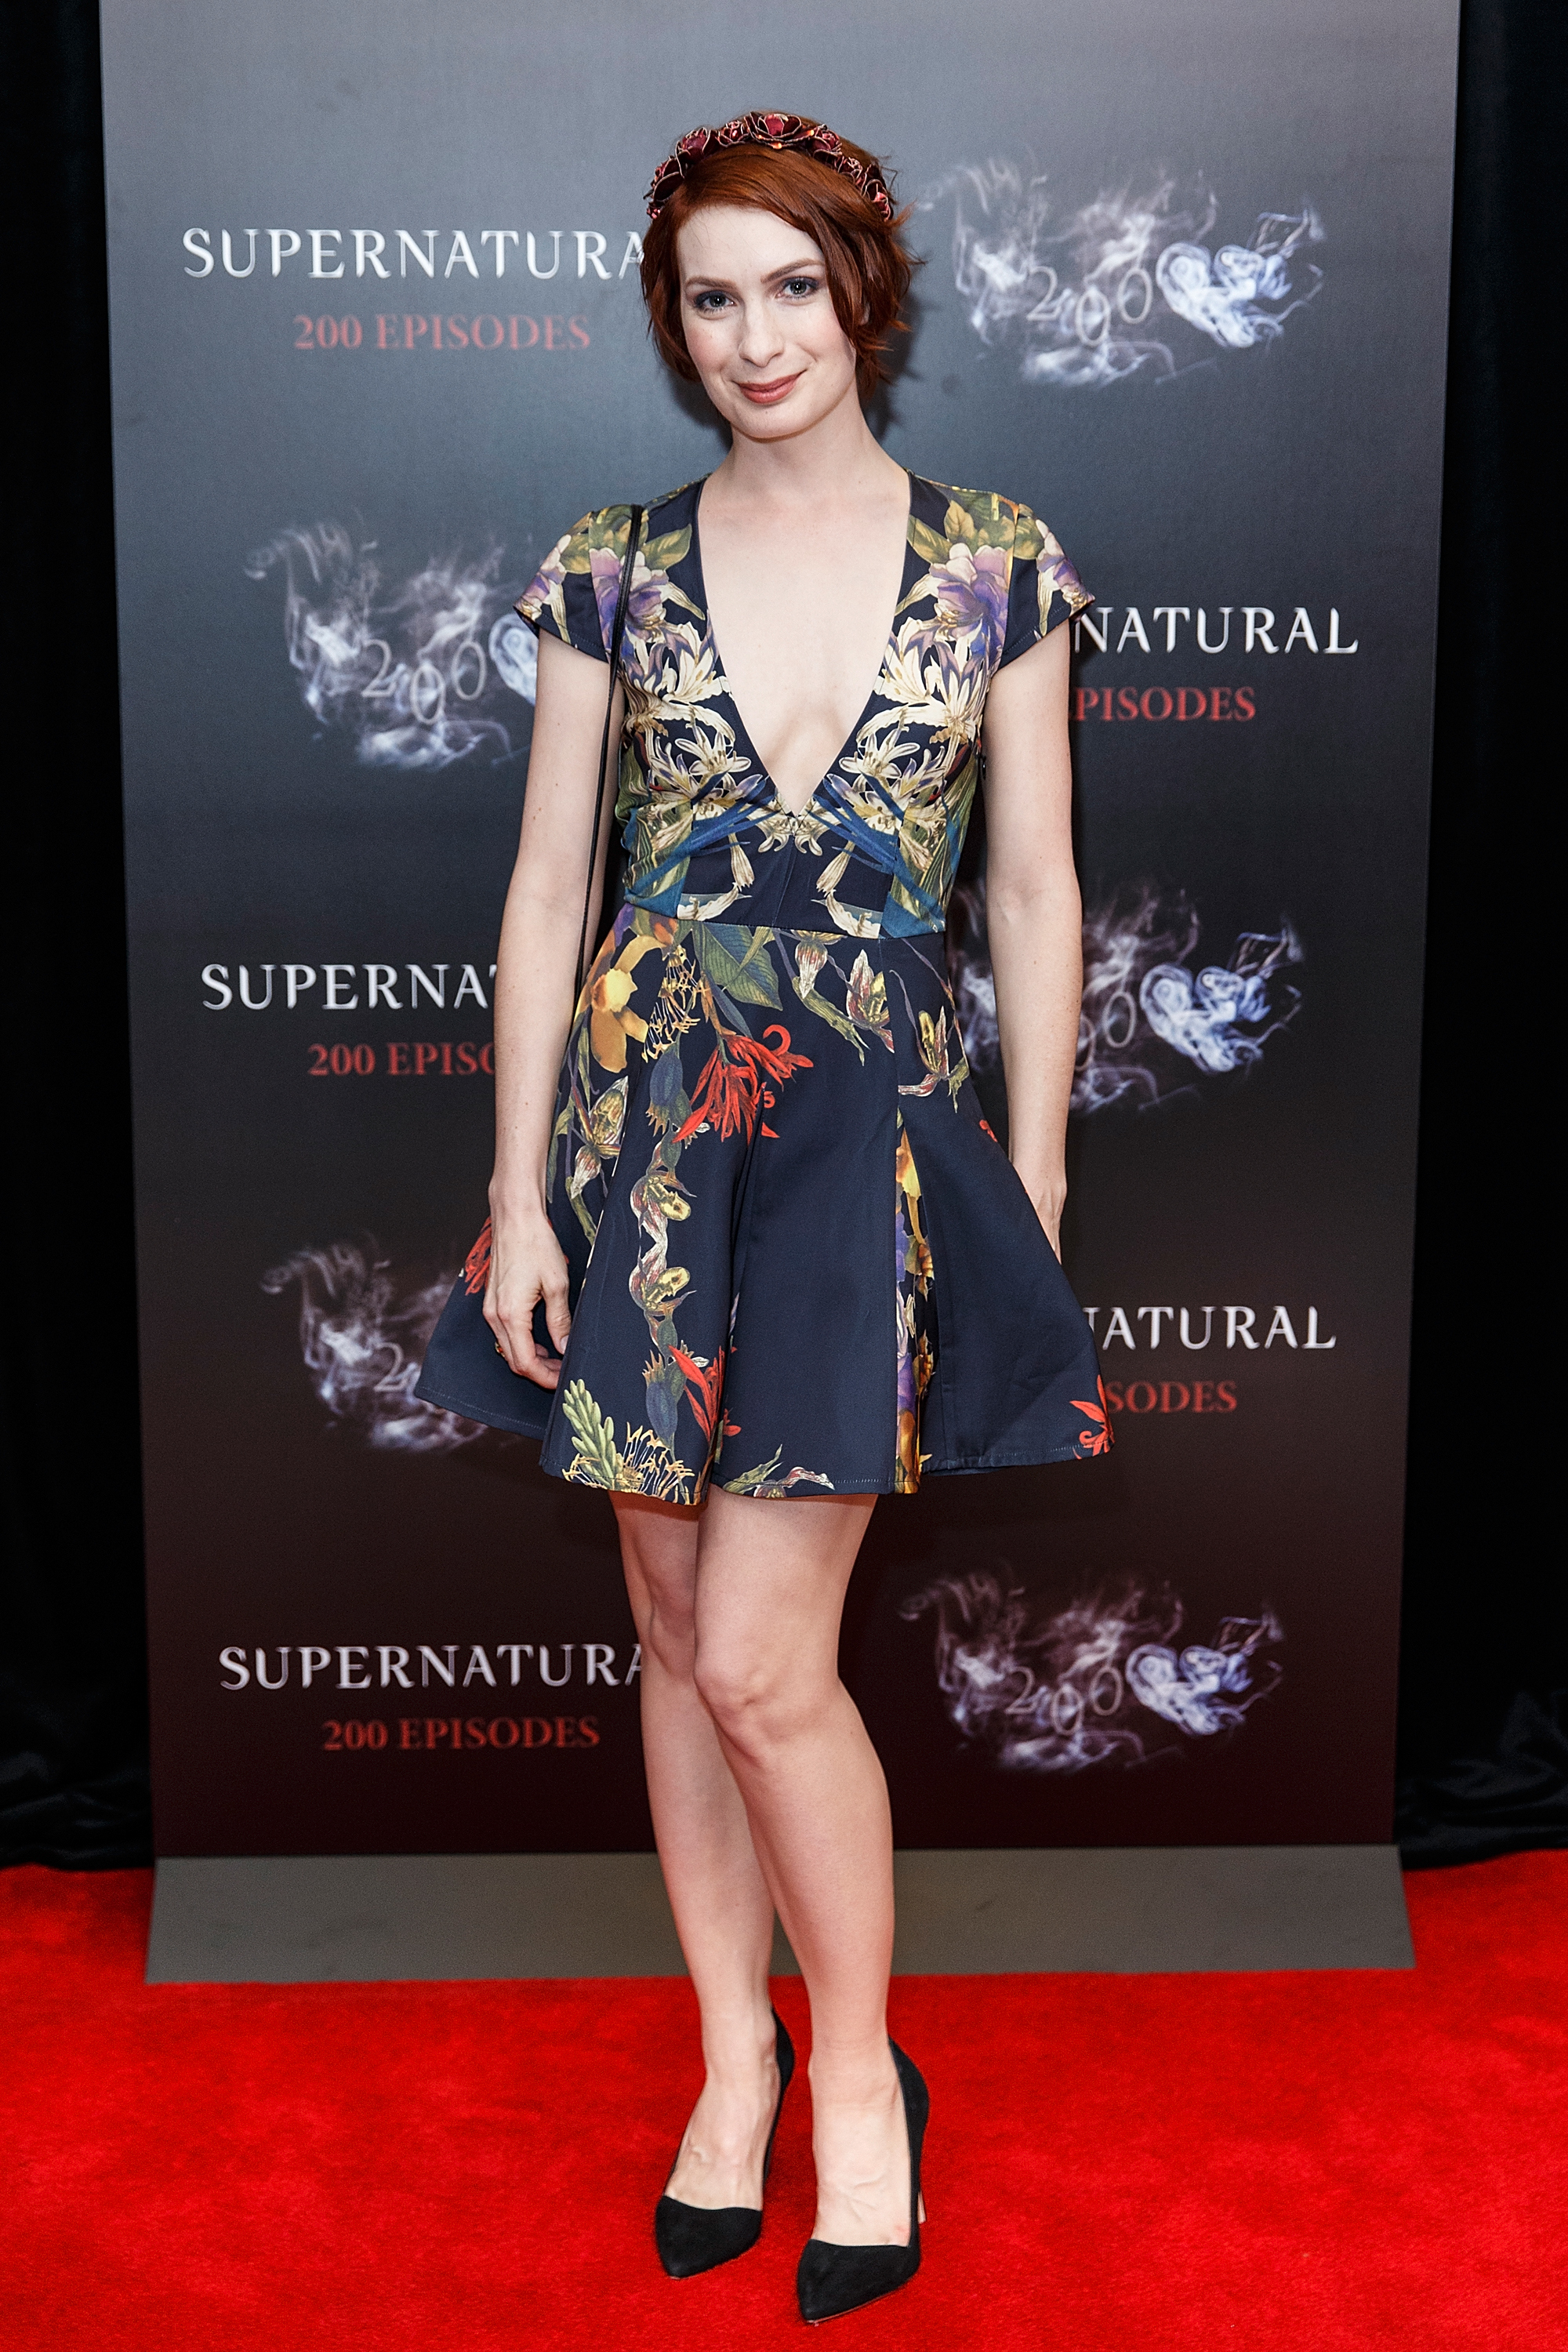 Actress Felicia Day celebrates the 200th episode of 'Supernatural' at Fairmont Pacific Rim Hotel on October 18, 2014 in Vancouver, Canada.